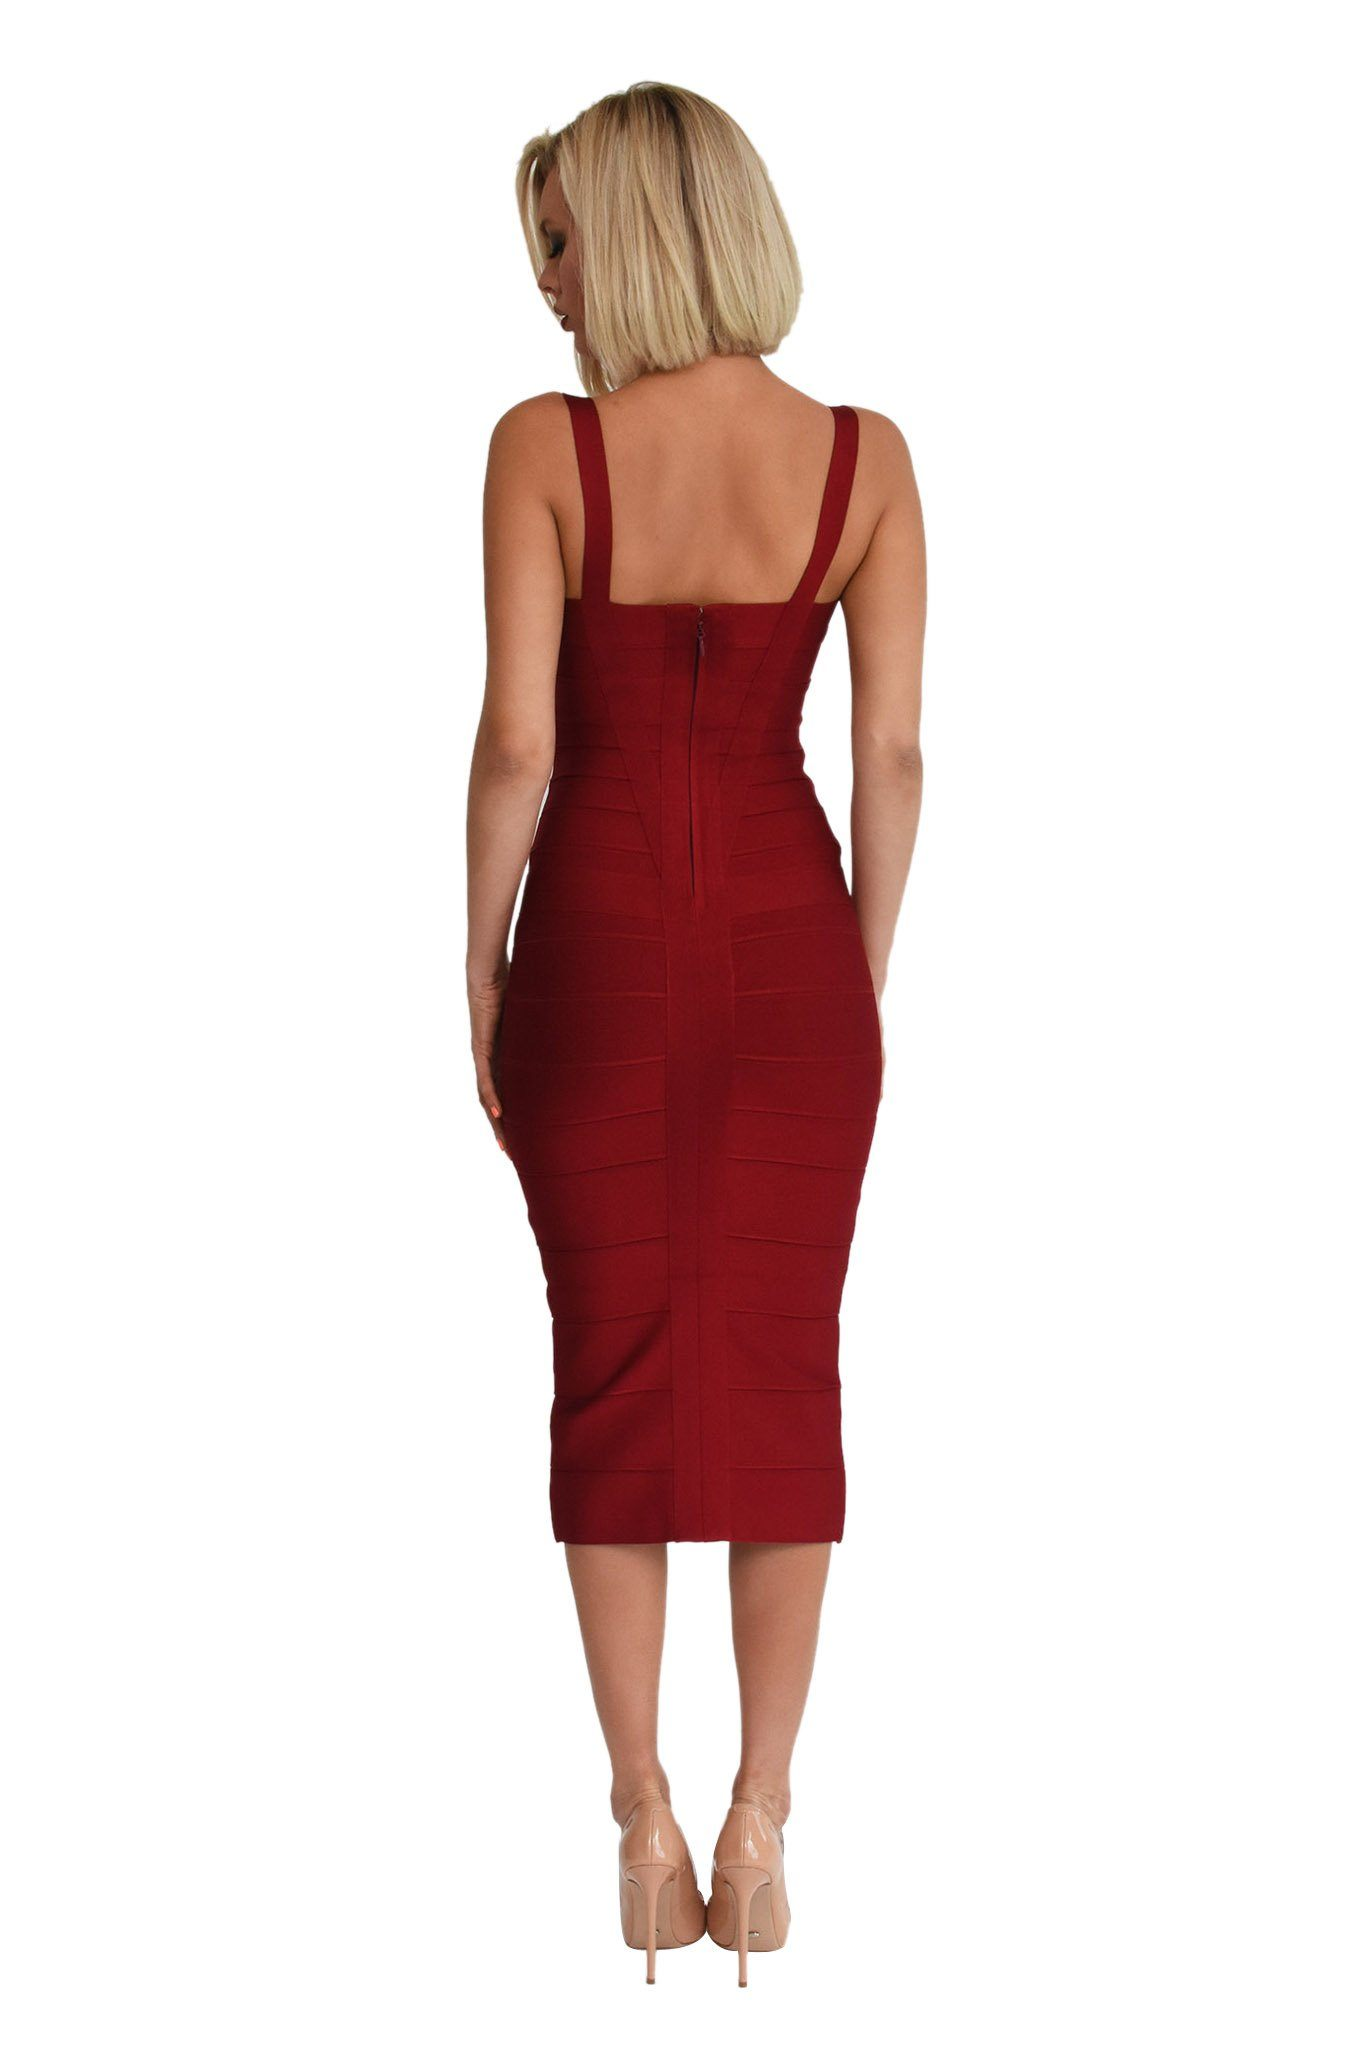 Below the Knee Bodycon Dresses